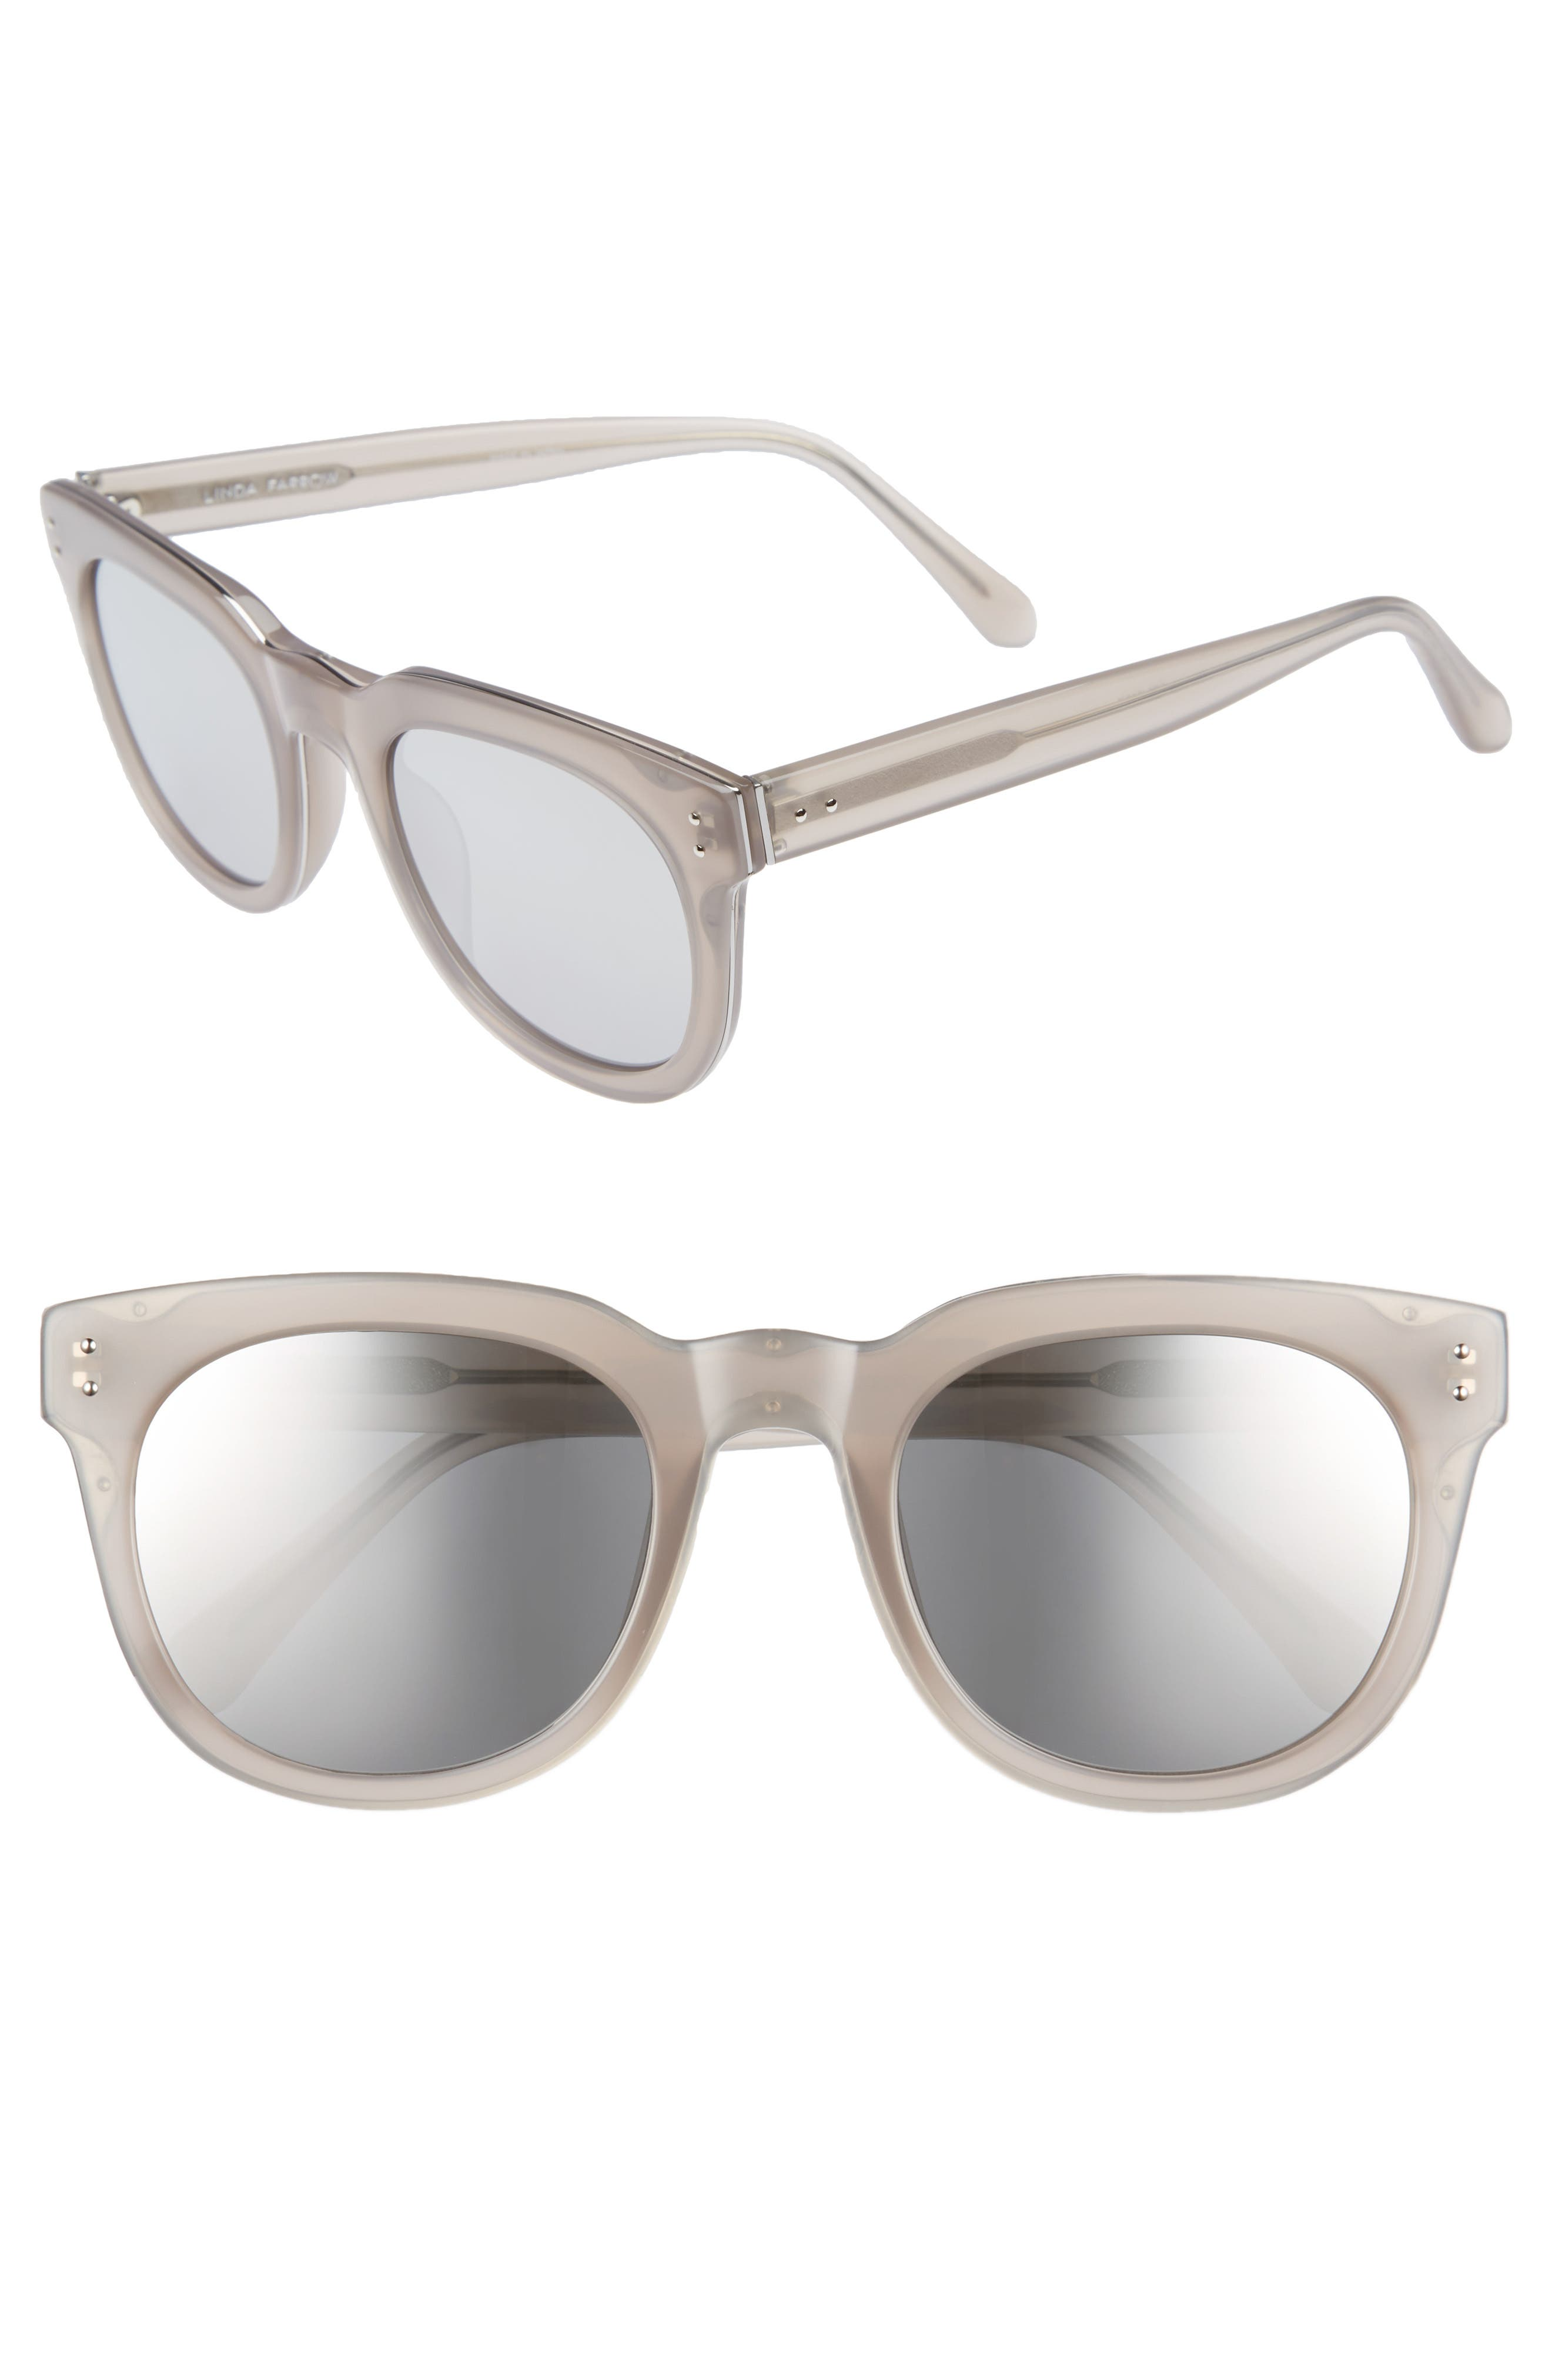 50mm D-Frame Mirrored Sunglasses,                         Main,                         color, 020